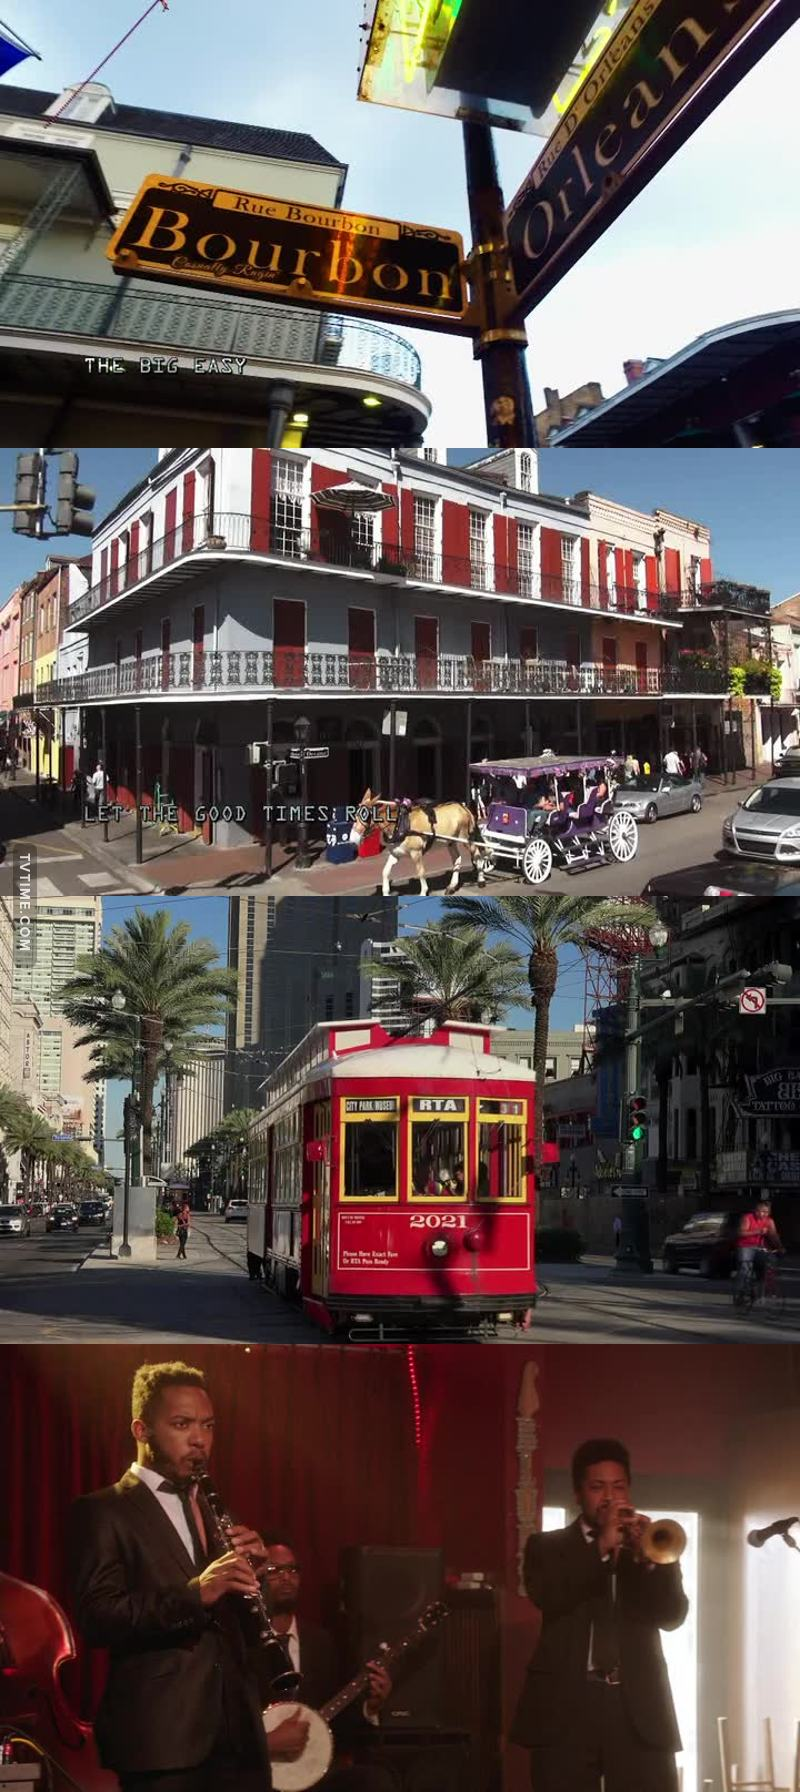 I've always wanted to visit New Orleans.  The history, the music, the people ... seems like my kind of city!